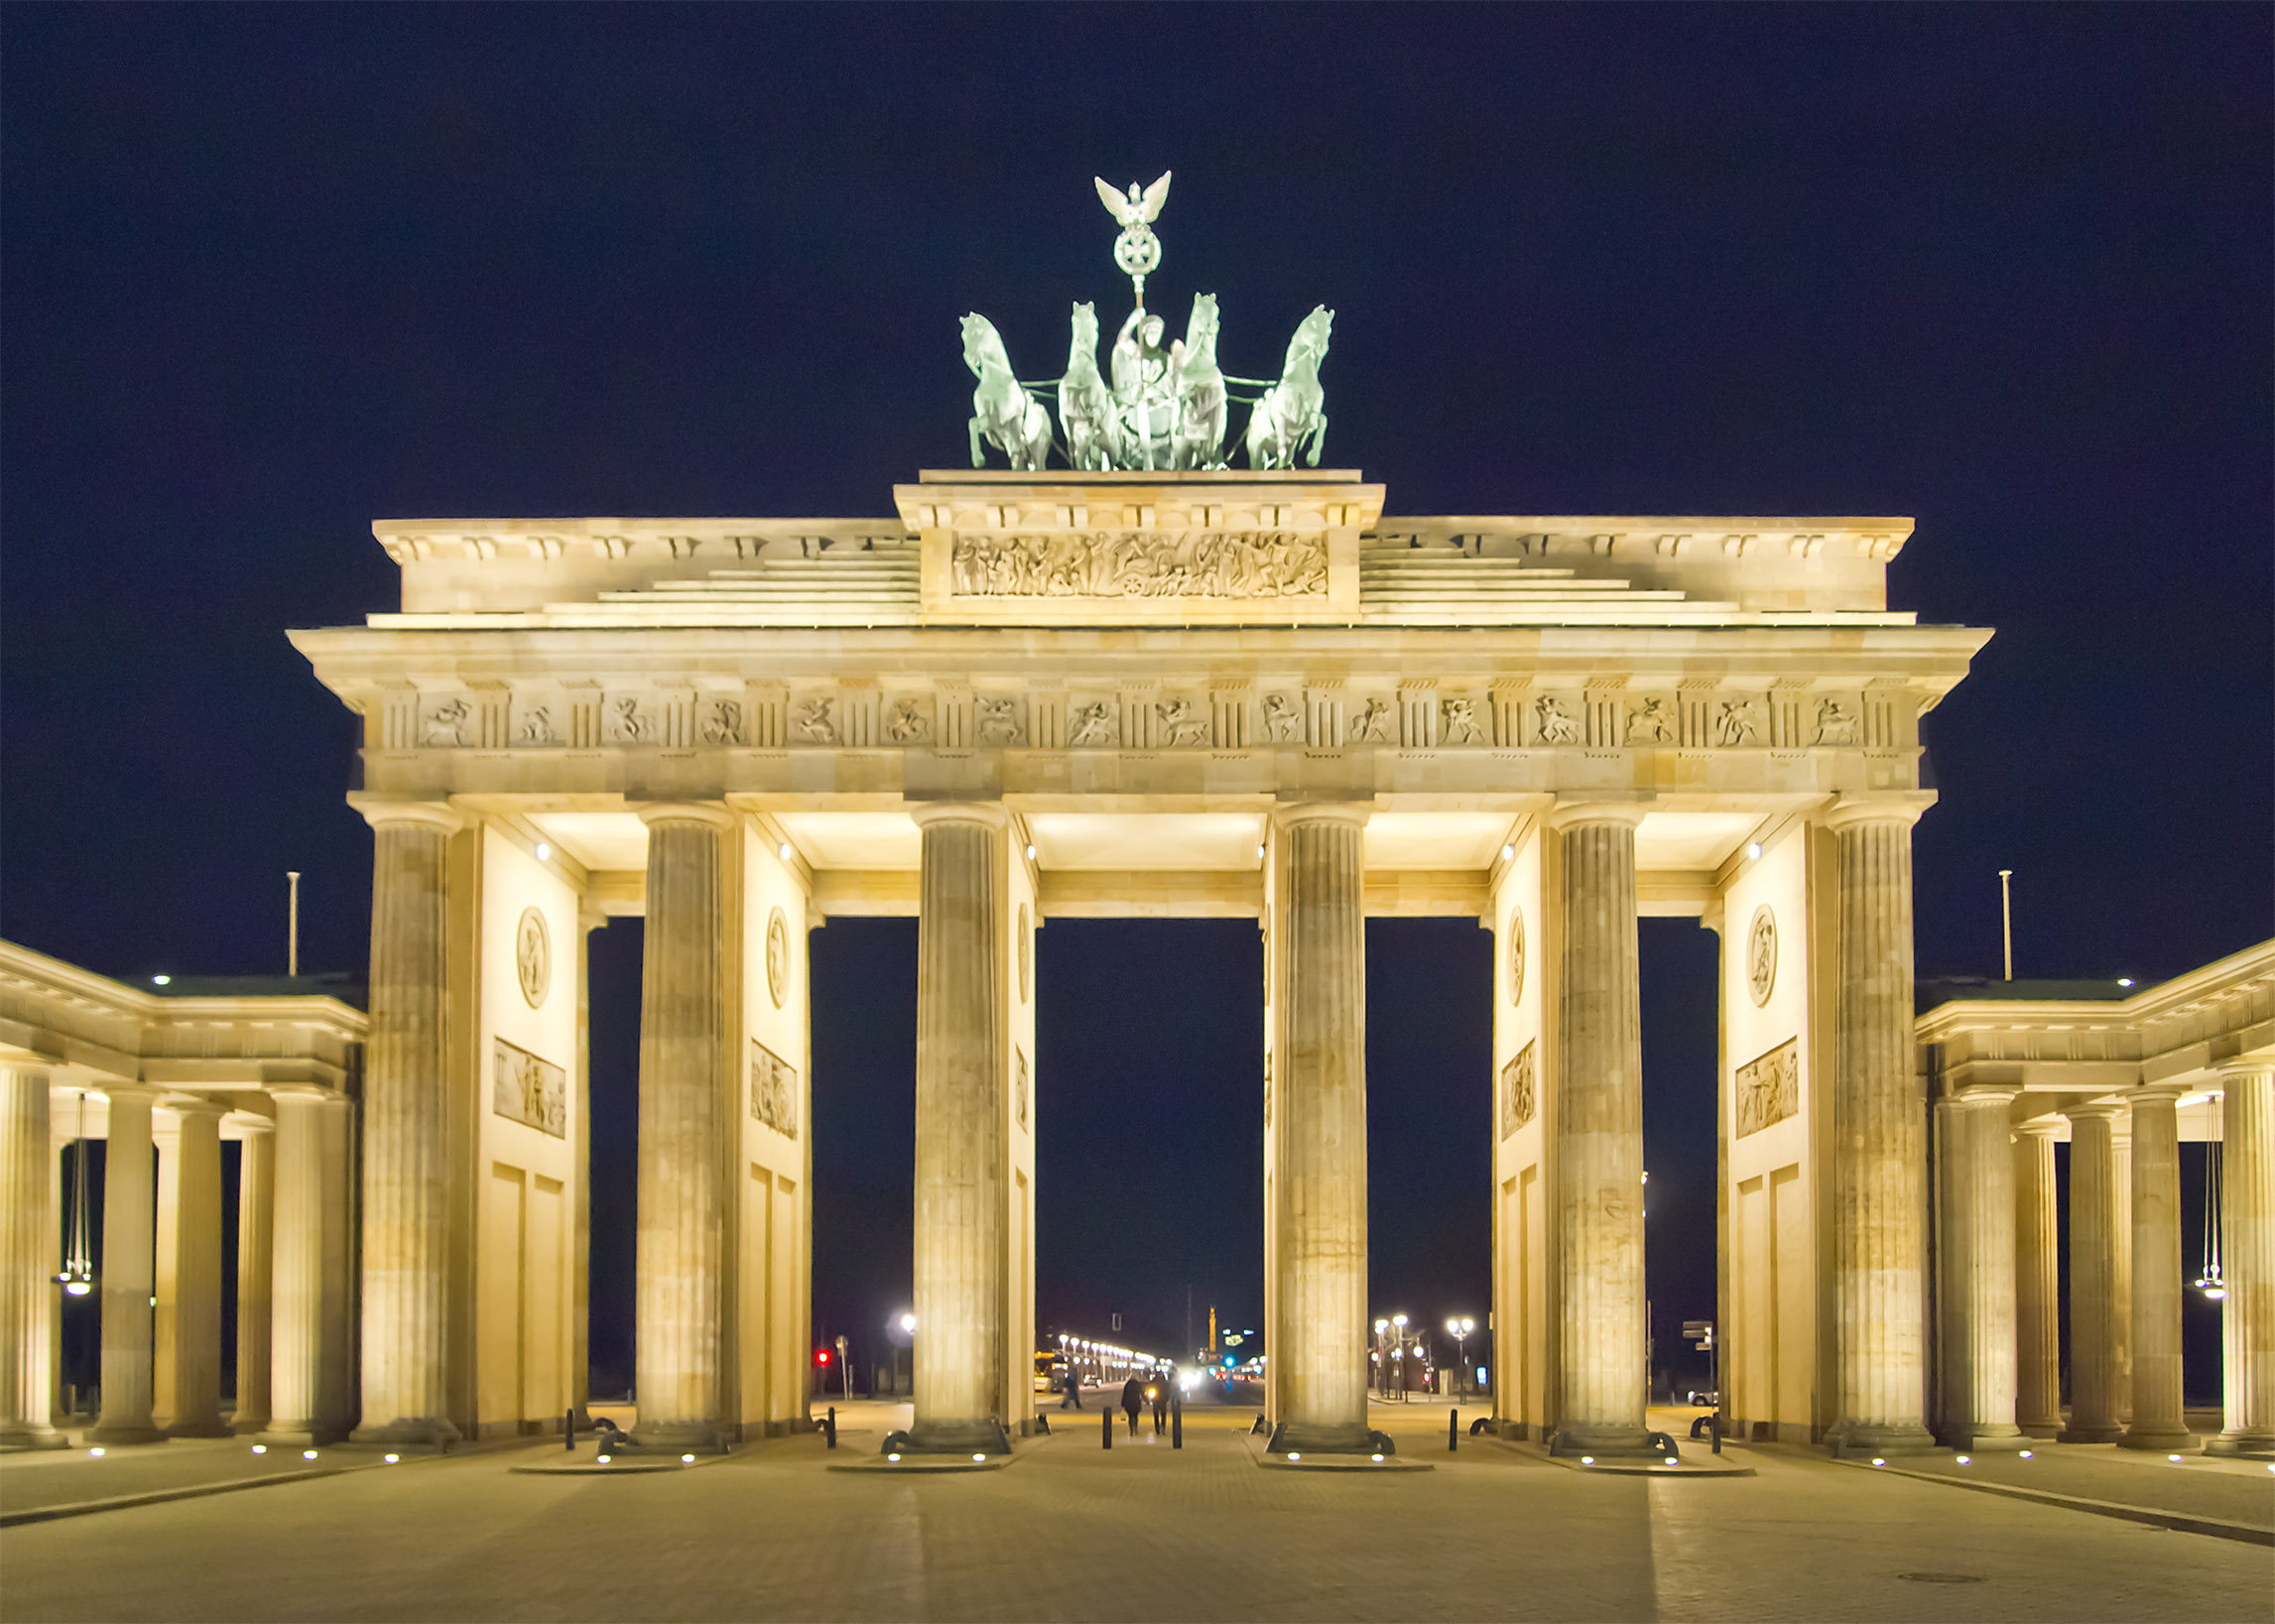 The Brandenburg Gate in Berlin at night, Germany.